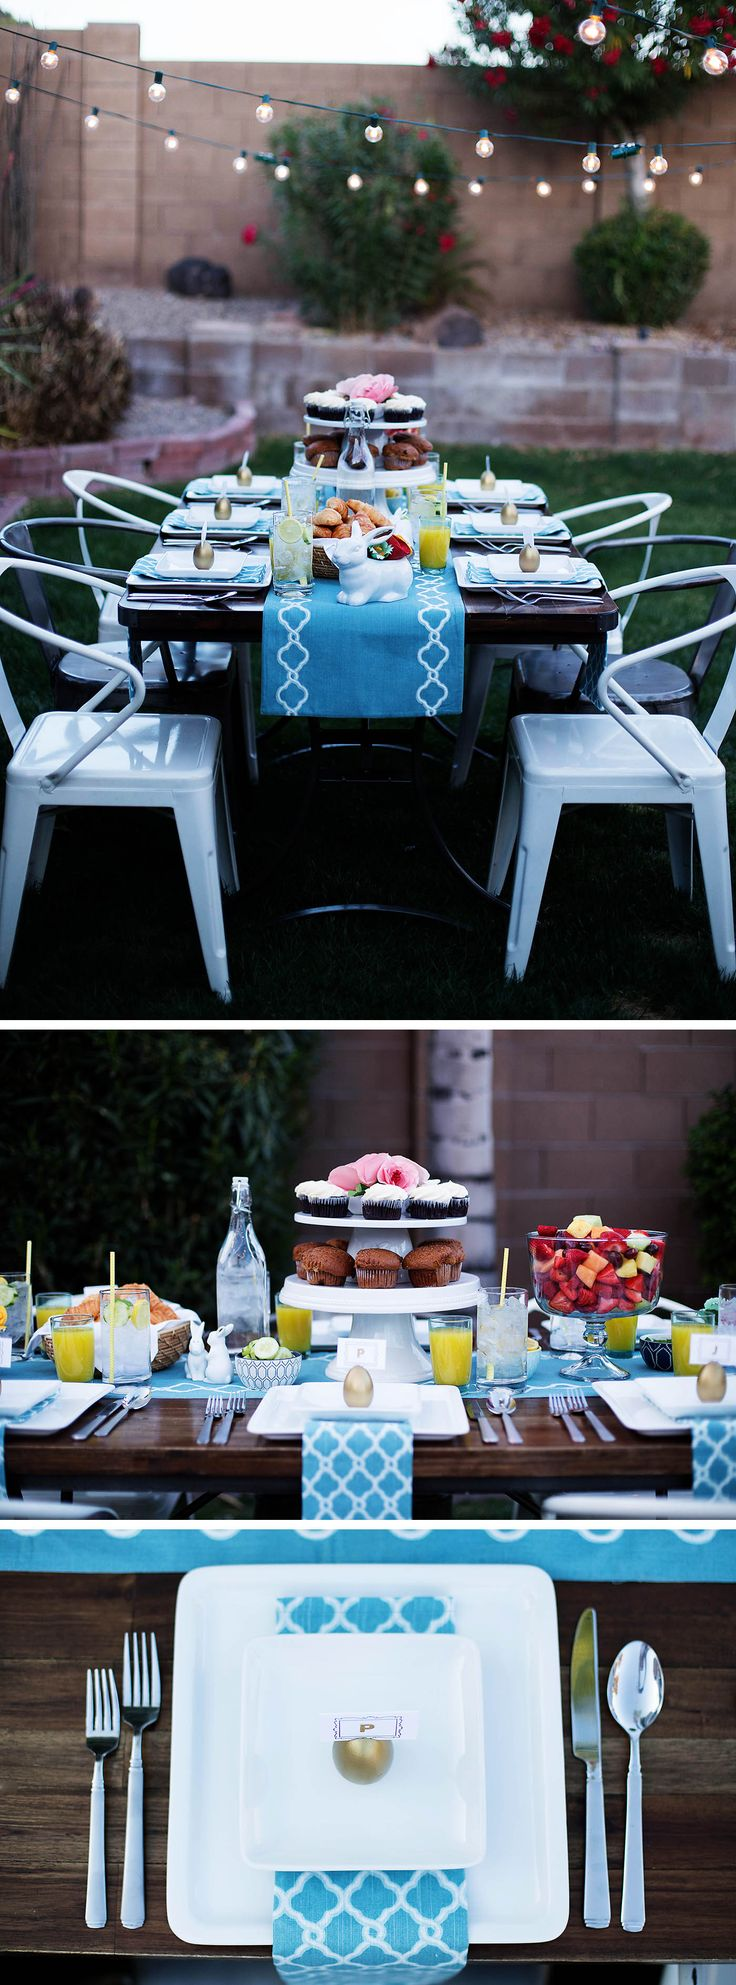 Easter String Lights Target : Loving @allison_waken s beautiful outdoor table setting for Easter. Whether its string lights ...